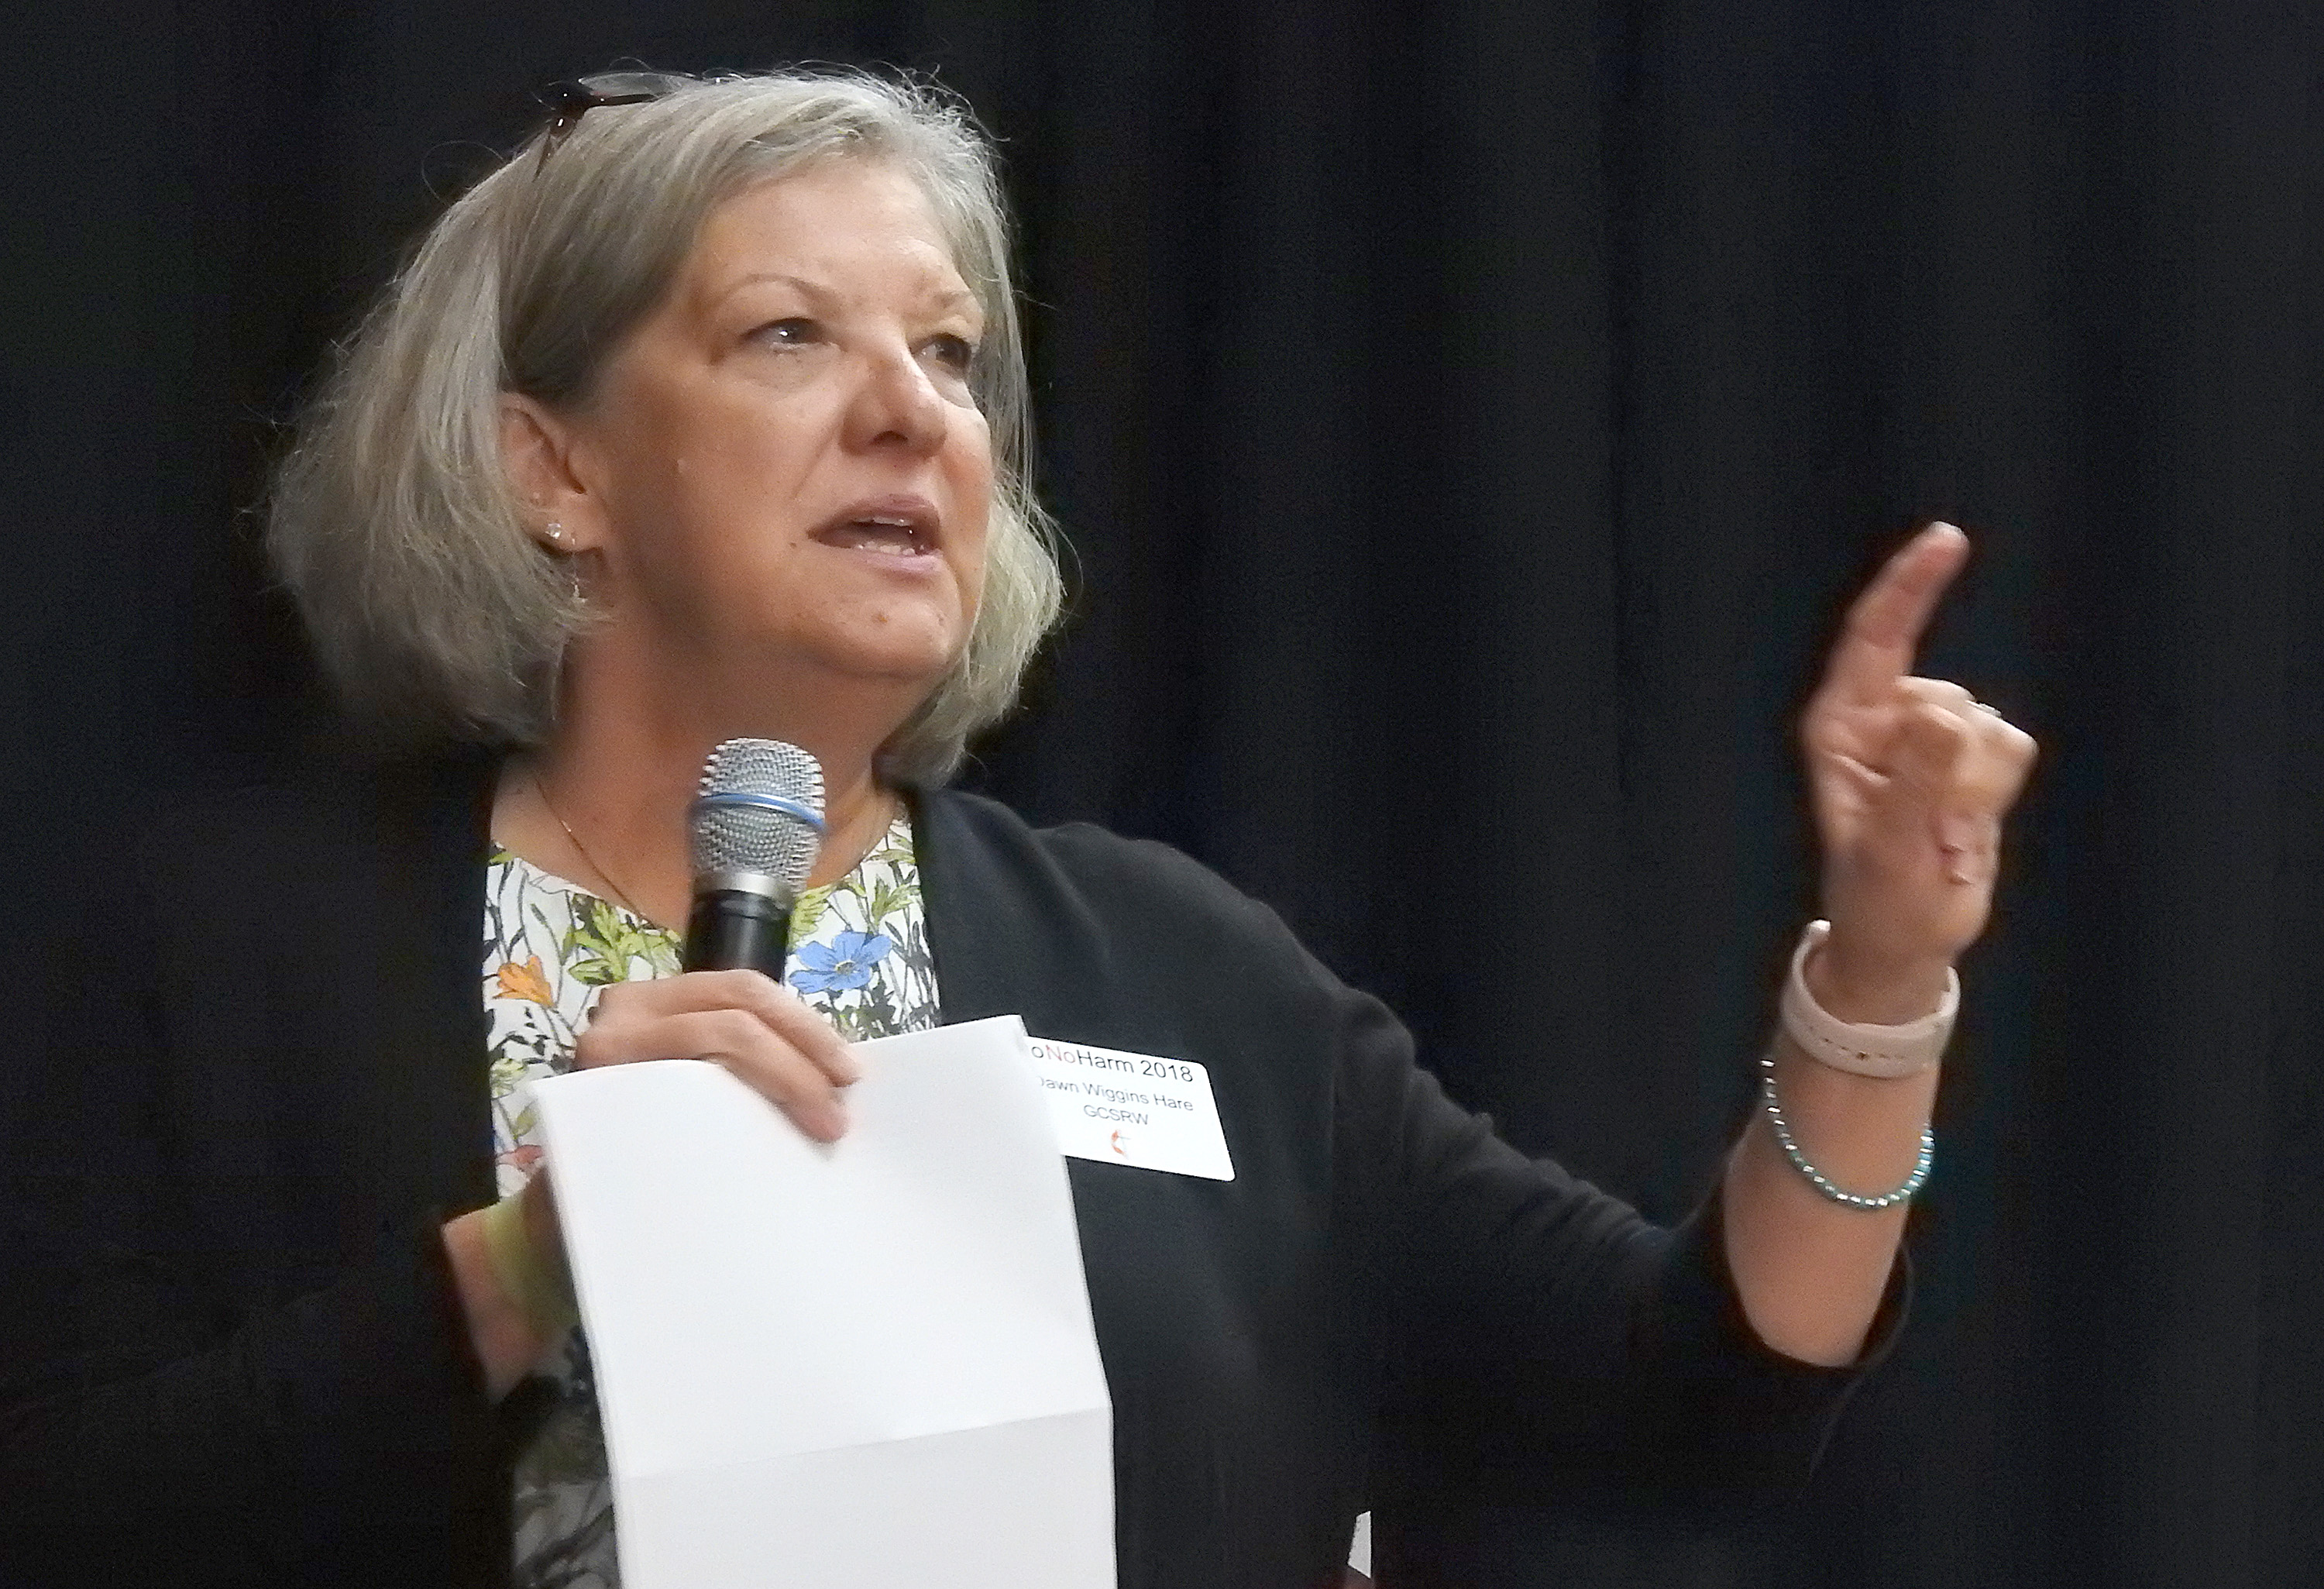 Dawn Wiggins Hare, top executive of the General Commission on the Status and Role of Women, speaks at the 2018 Do No Harm conference of The United Methodist Church. The sexual ethics summit drew clergy and laity from across the denomination, including the Central Conferences. Photo by Sam Hodges, UMNS.